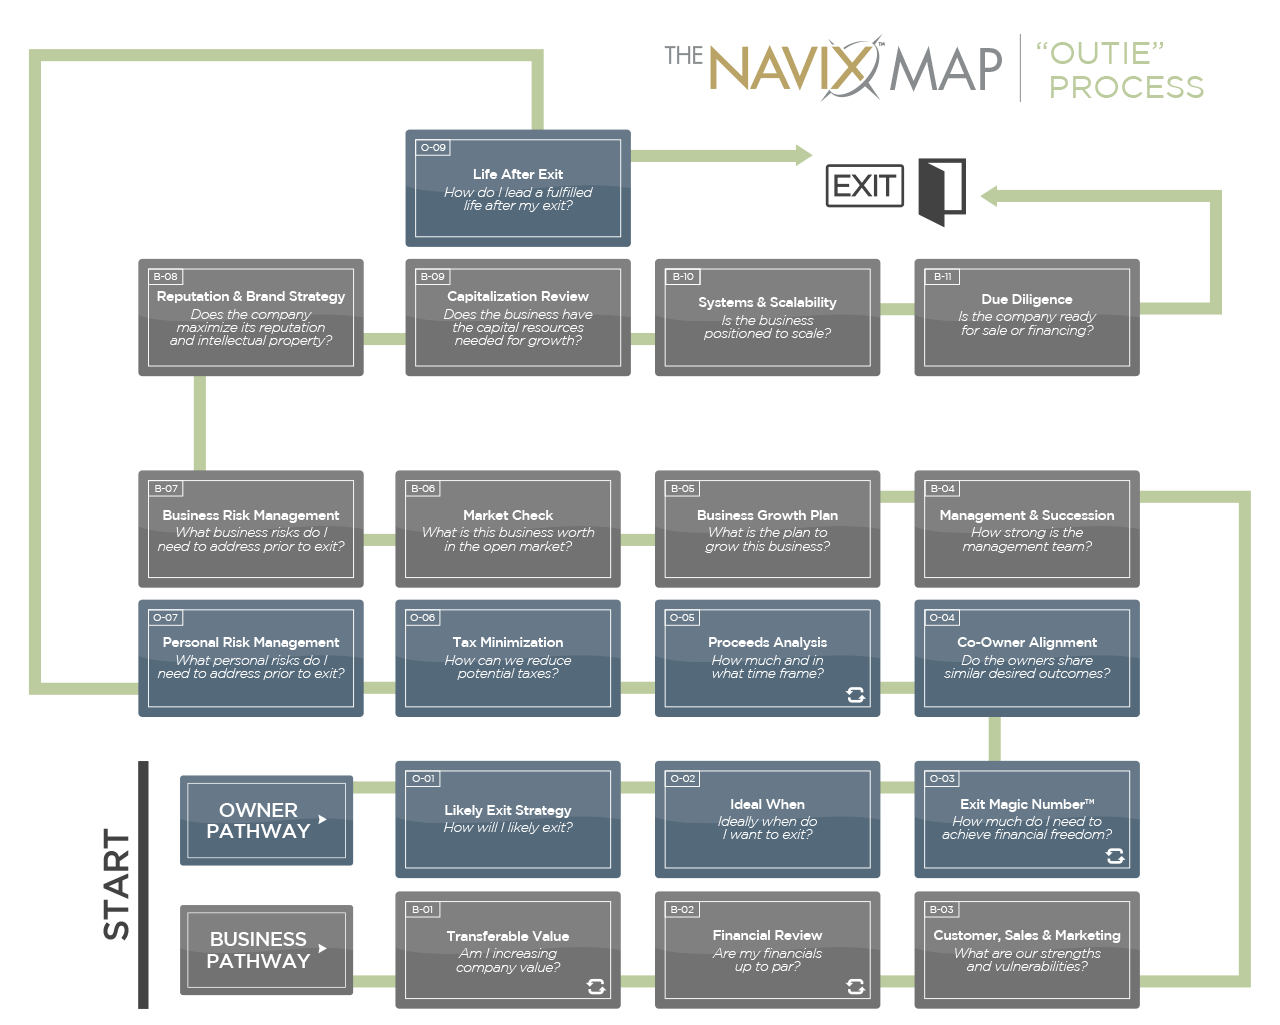 The NAVIX Map | The Outie Process